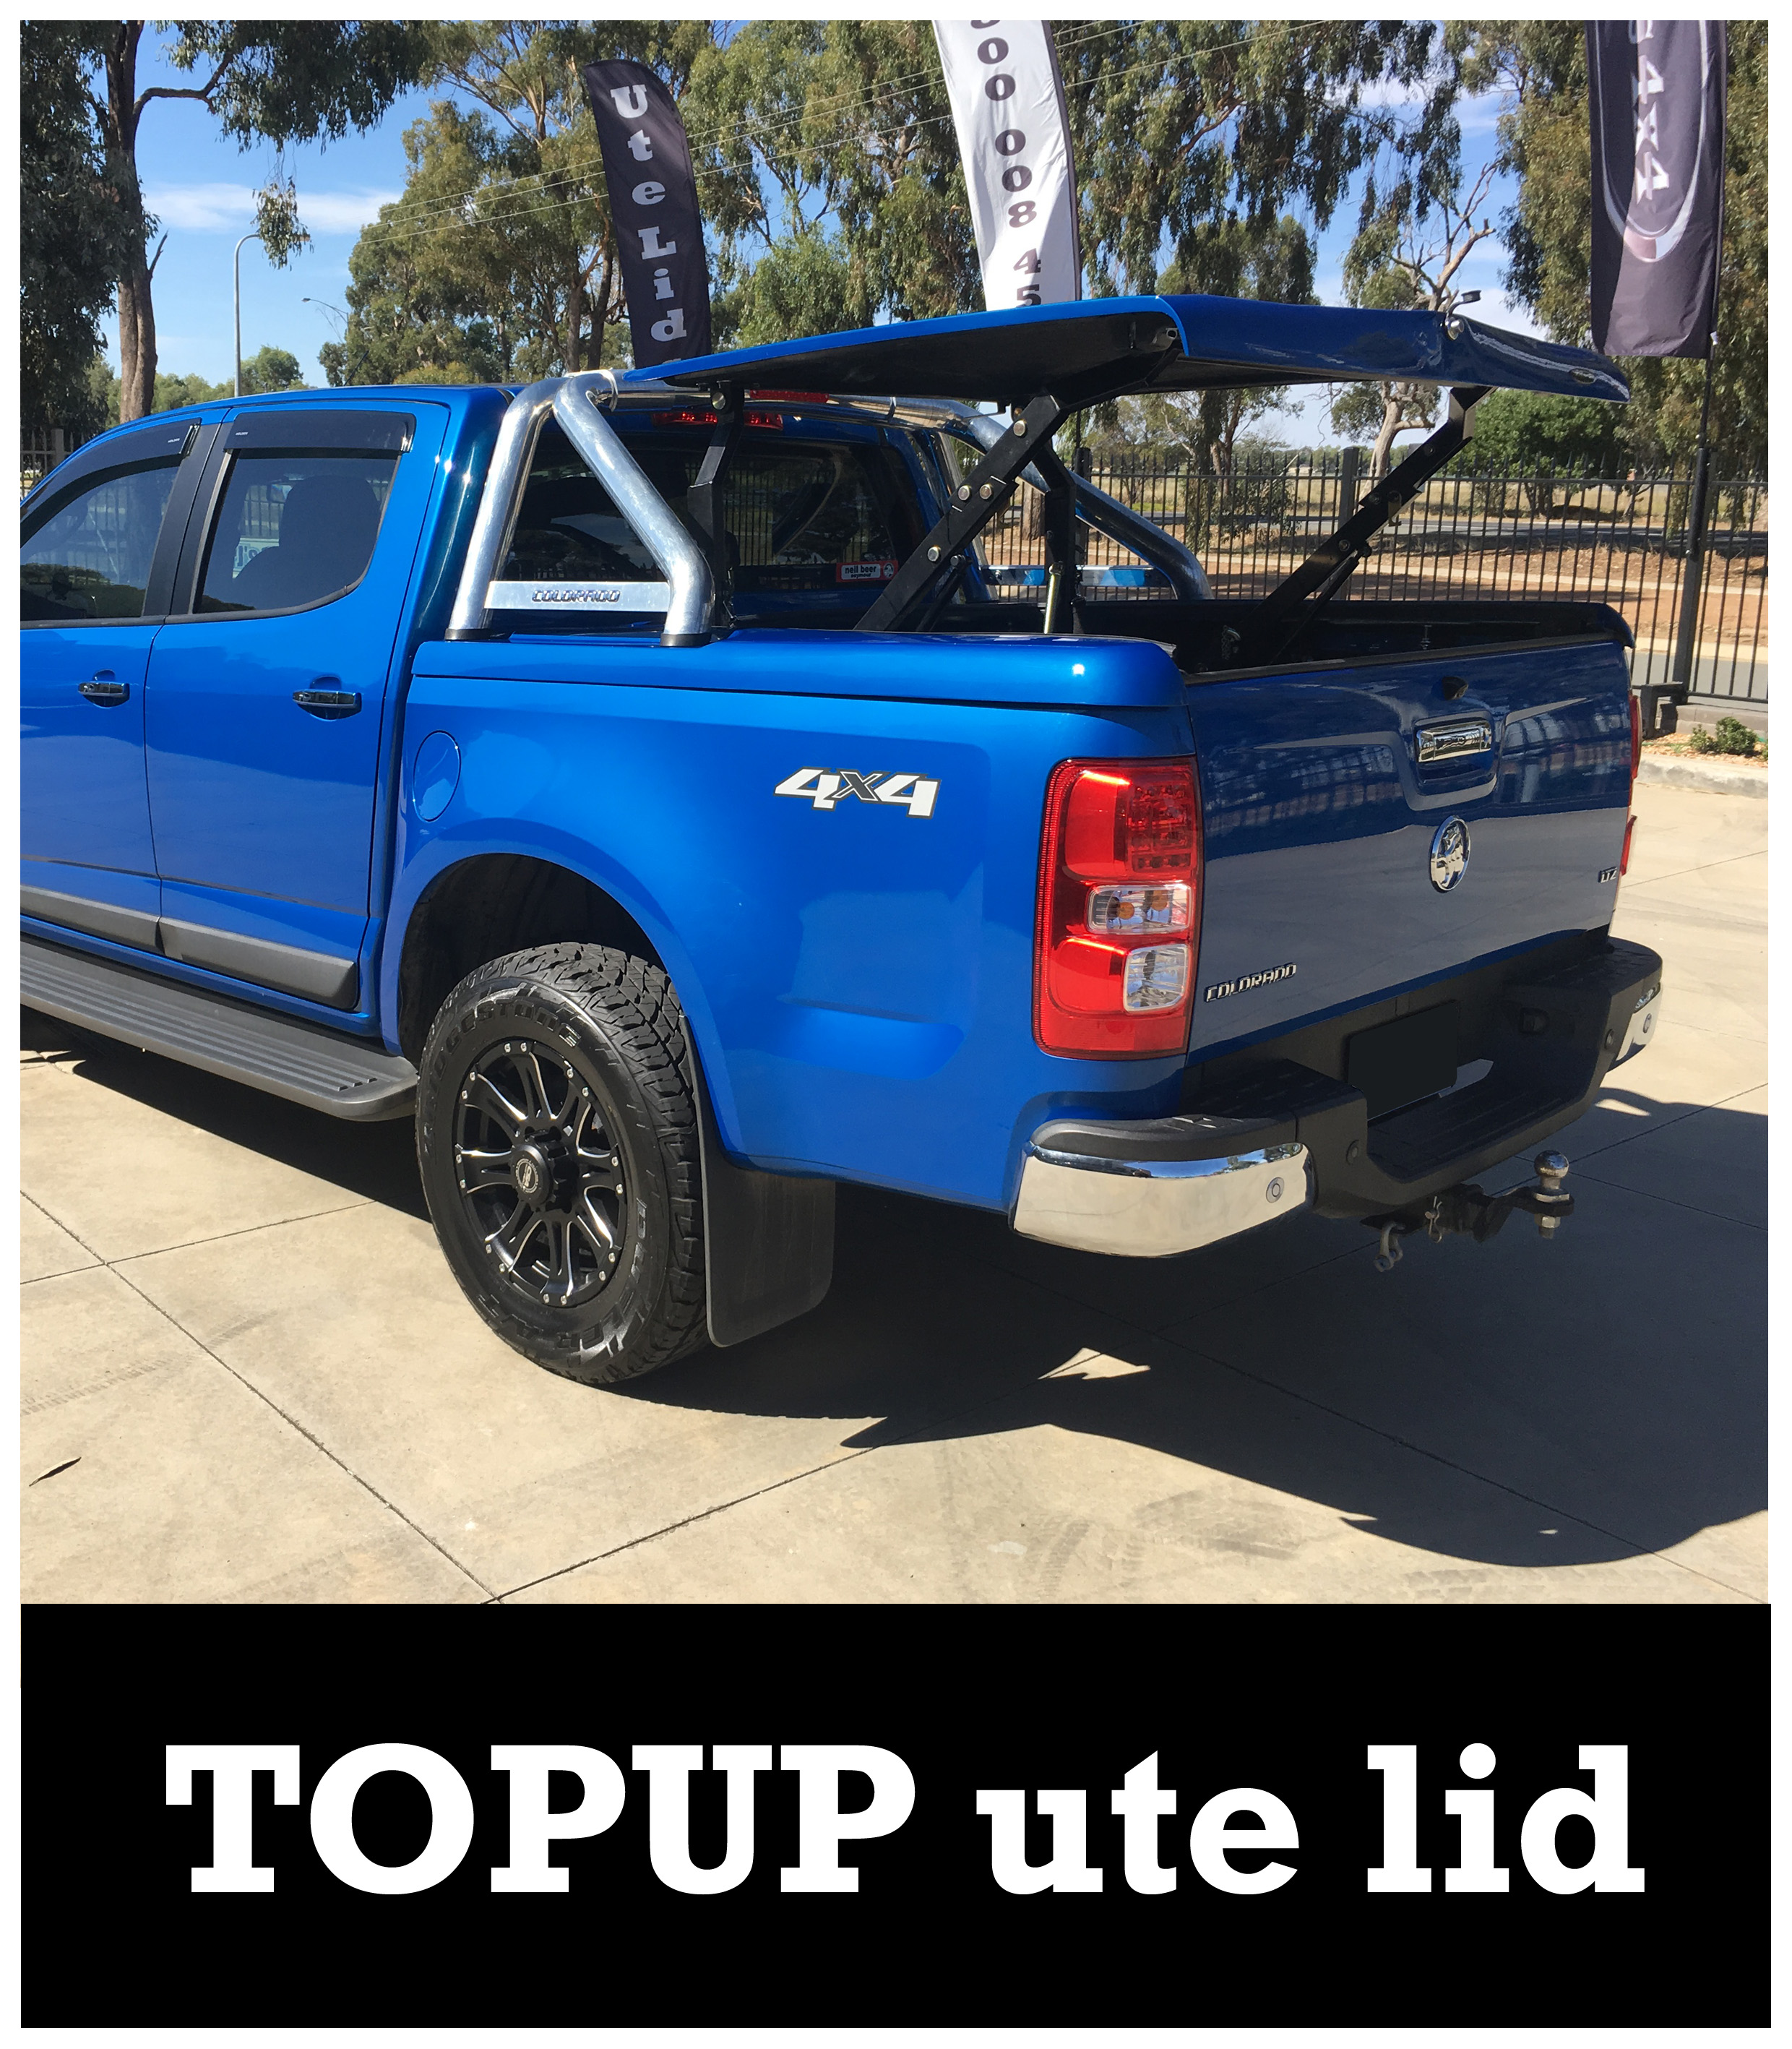 WEbsite_Colorado_TopUp_Thumbnail_edited-1.jpg